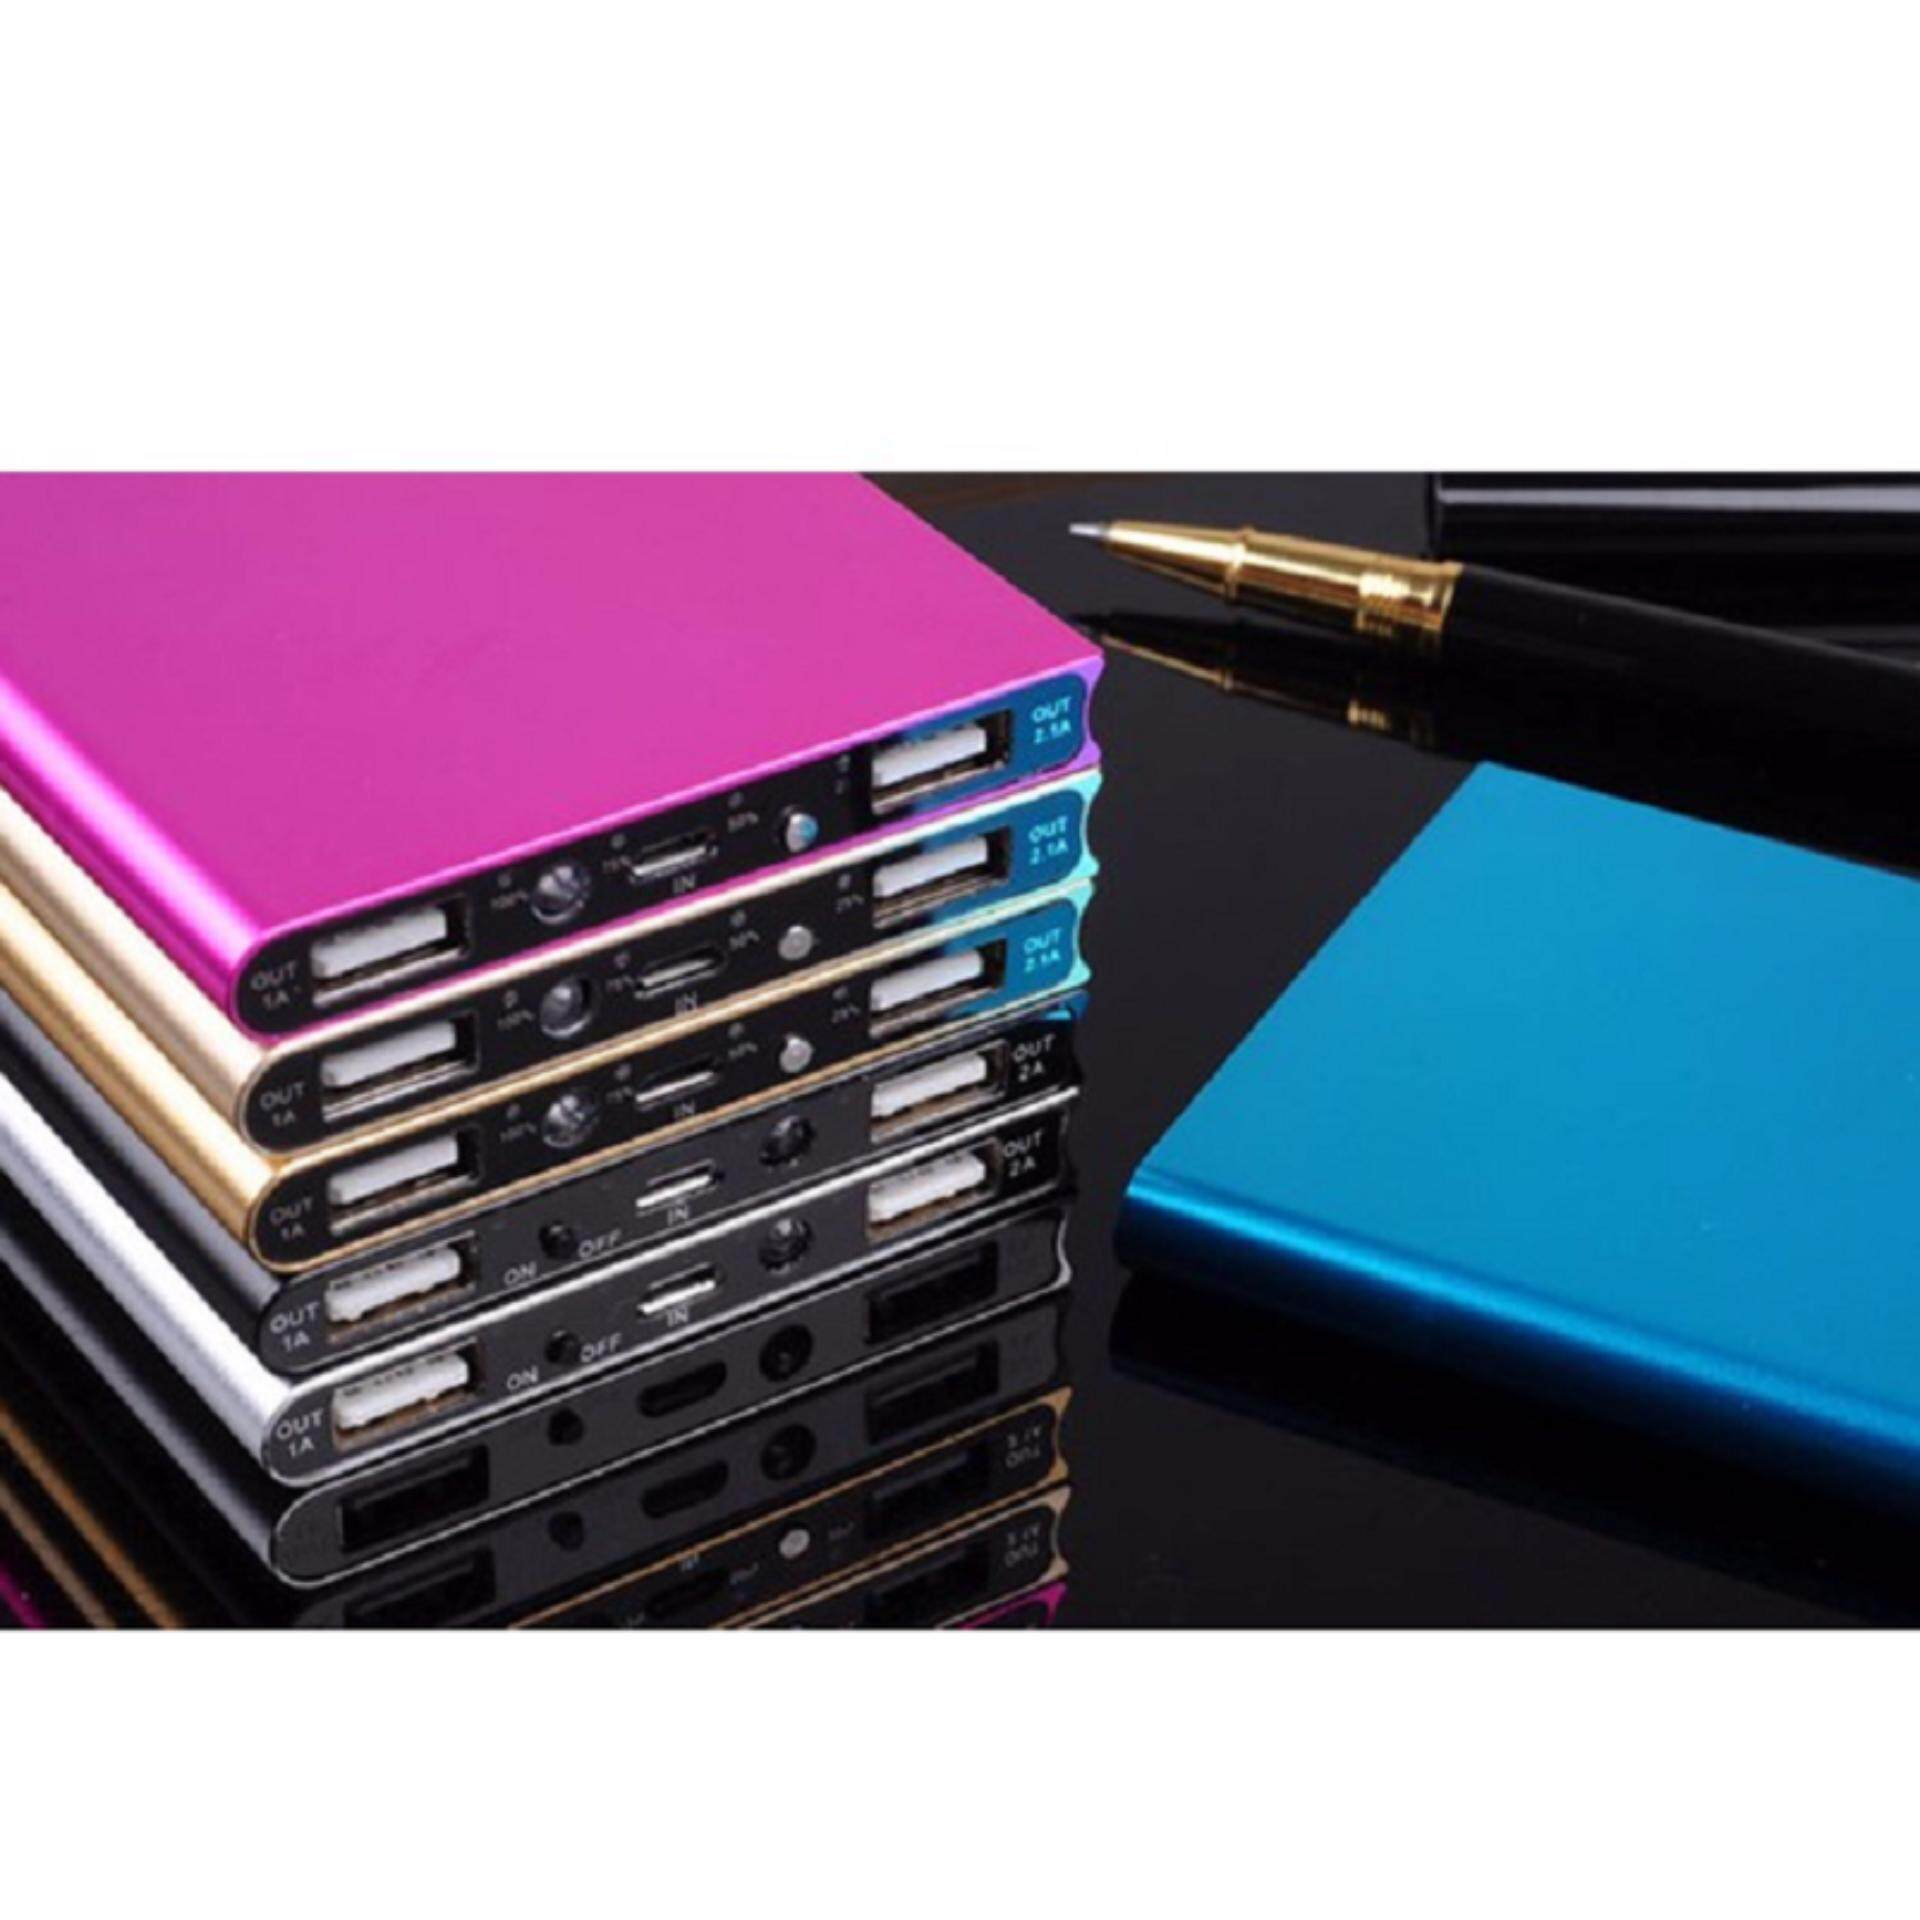 2x 48,000 mAh Super Thin Powerbank with Backlight (CLEARANCE SALE BELOW COST)